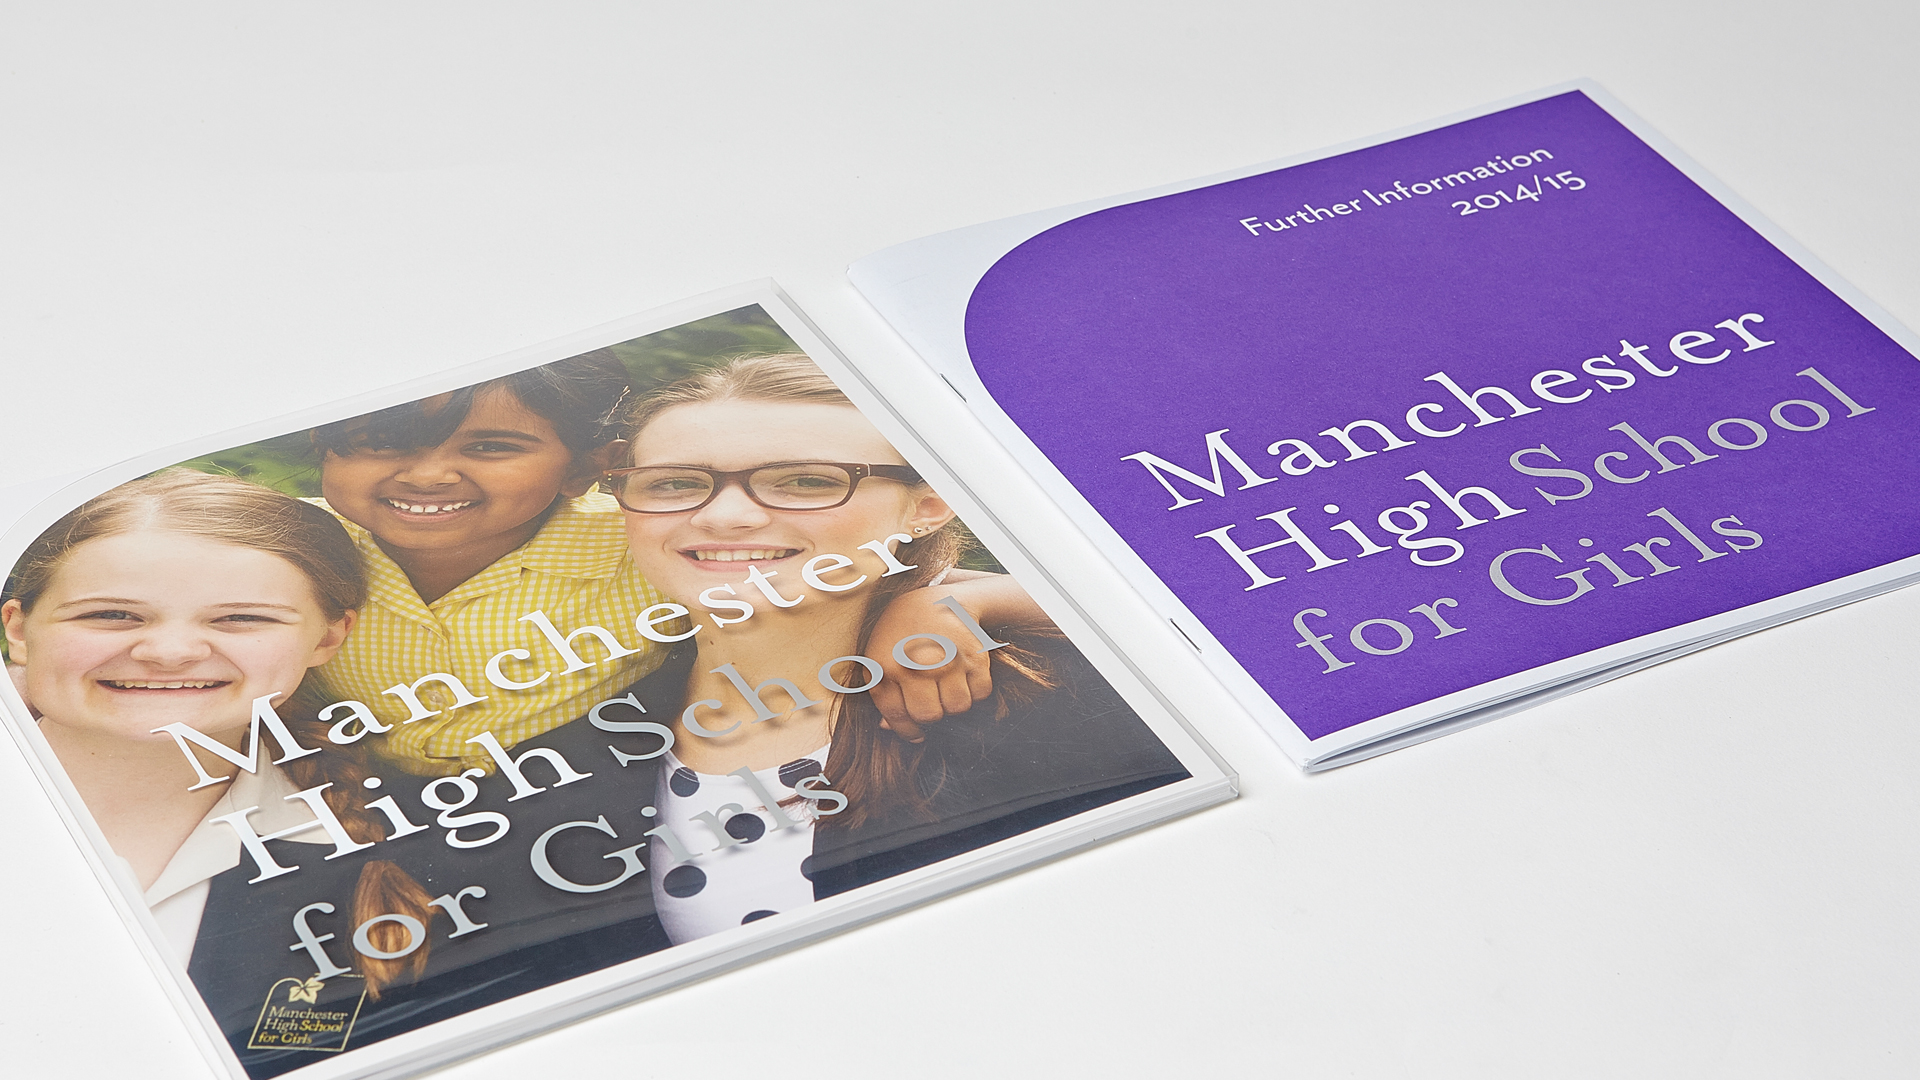 Manchester High School For Girls prospectus sleeve cover blue